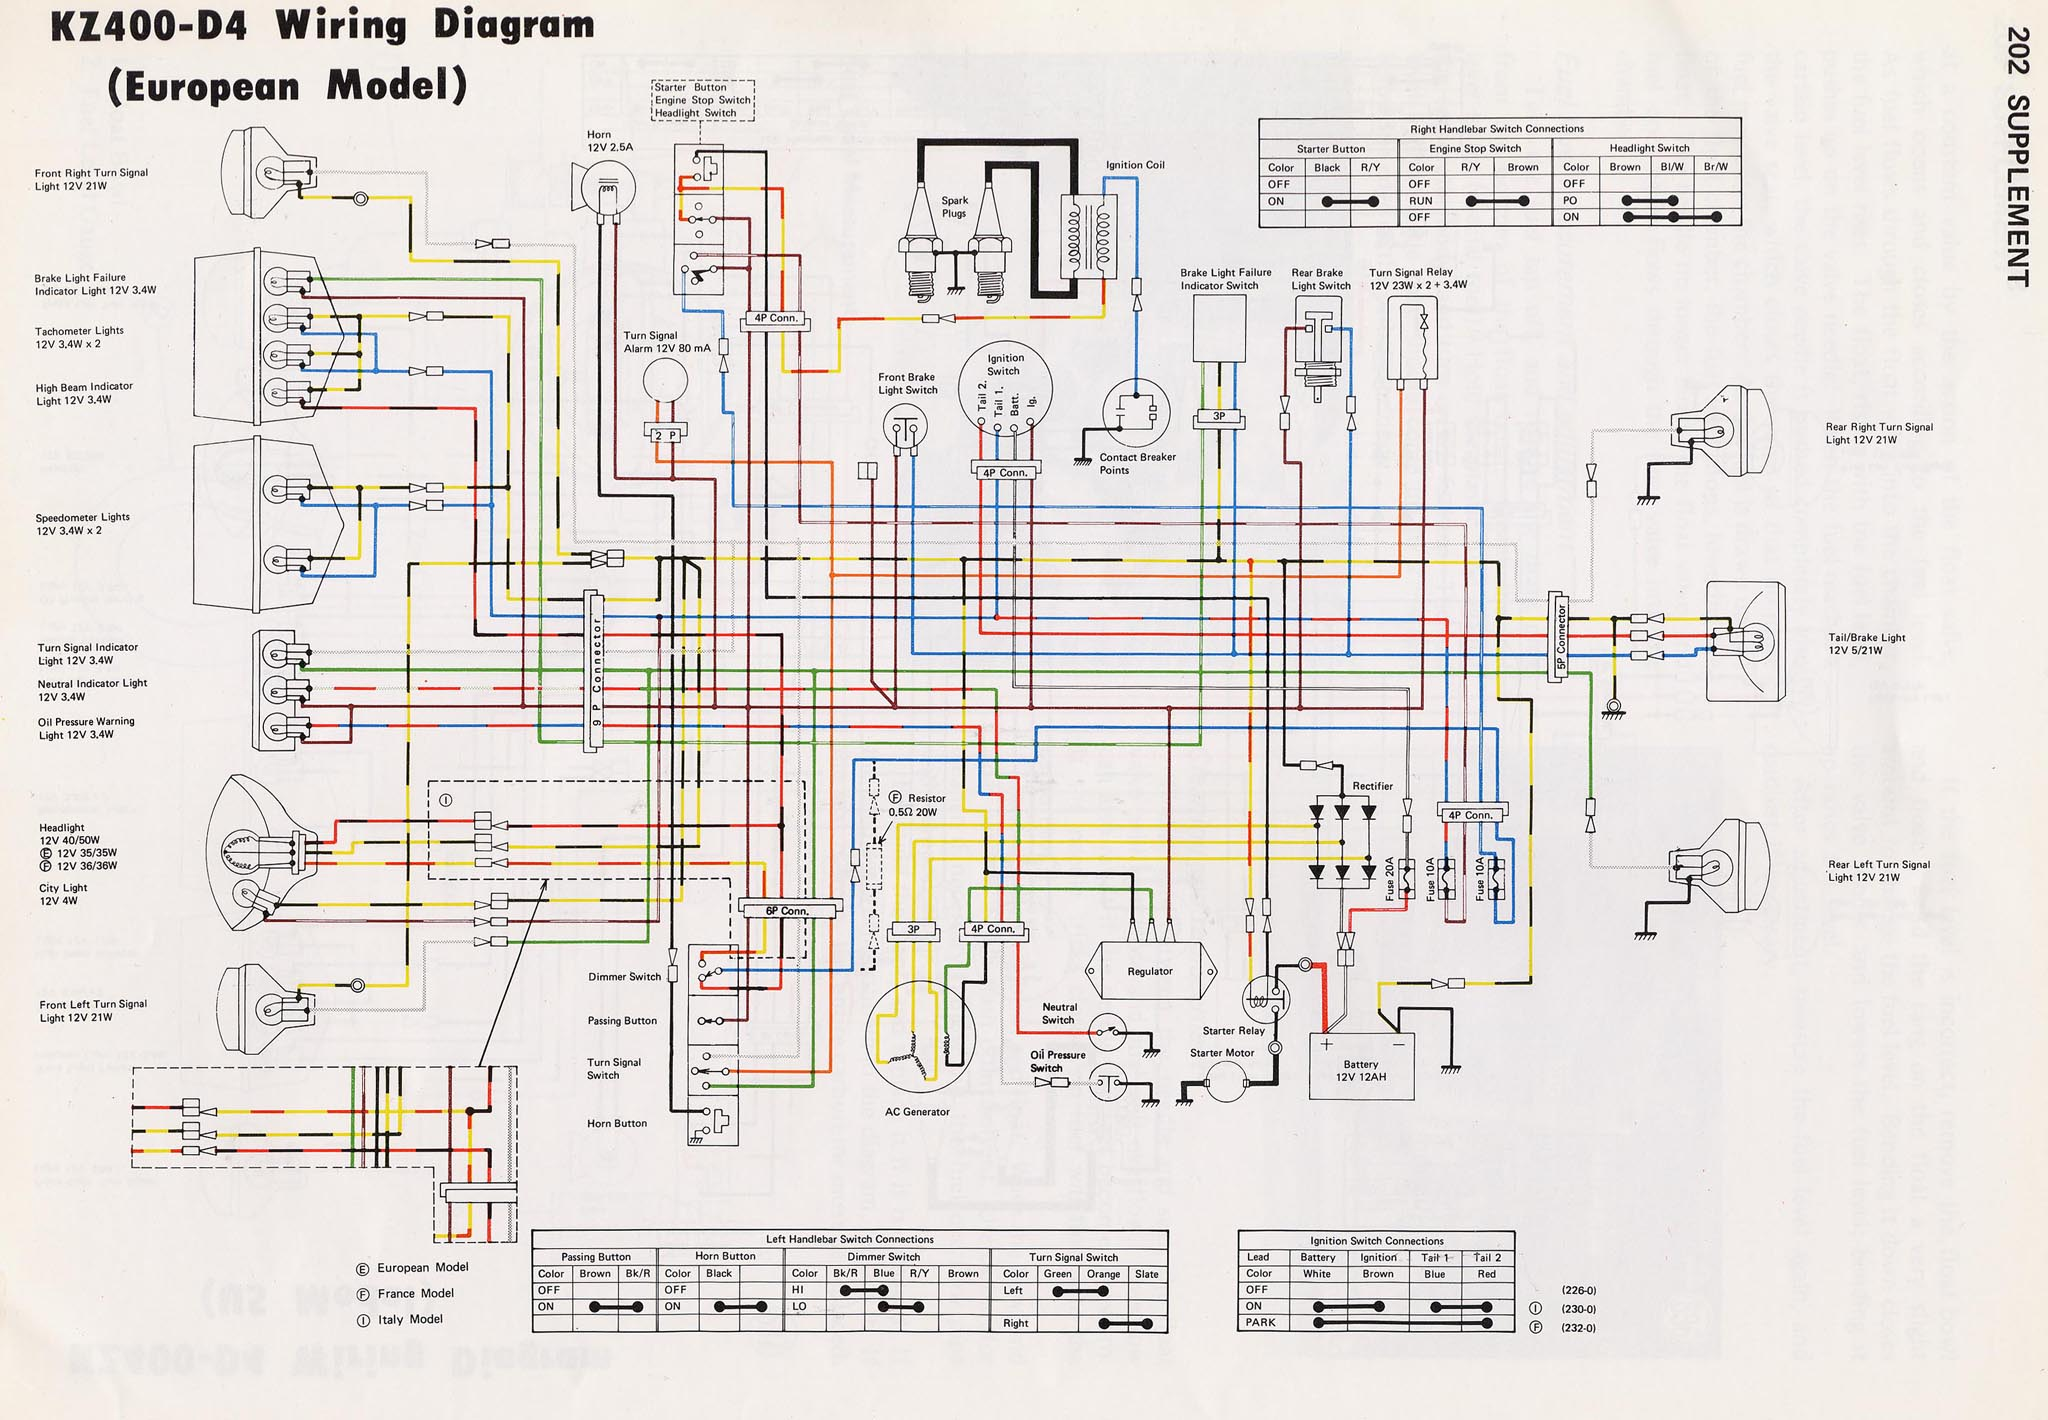 kz400 wiring diagram electrical wiring diagram guide Kz900 Wiring Diagram